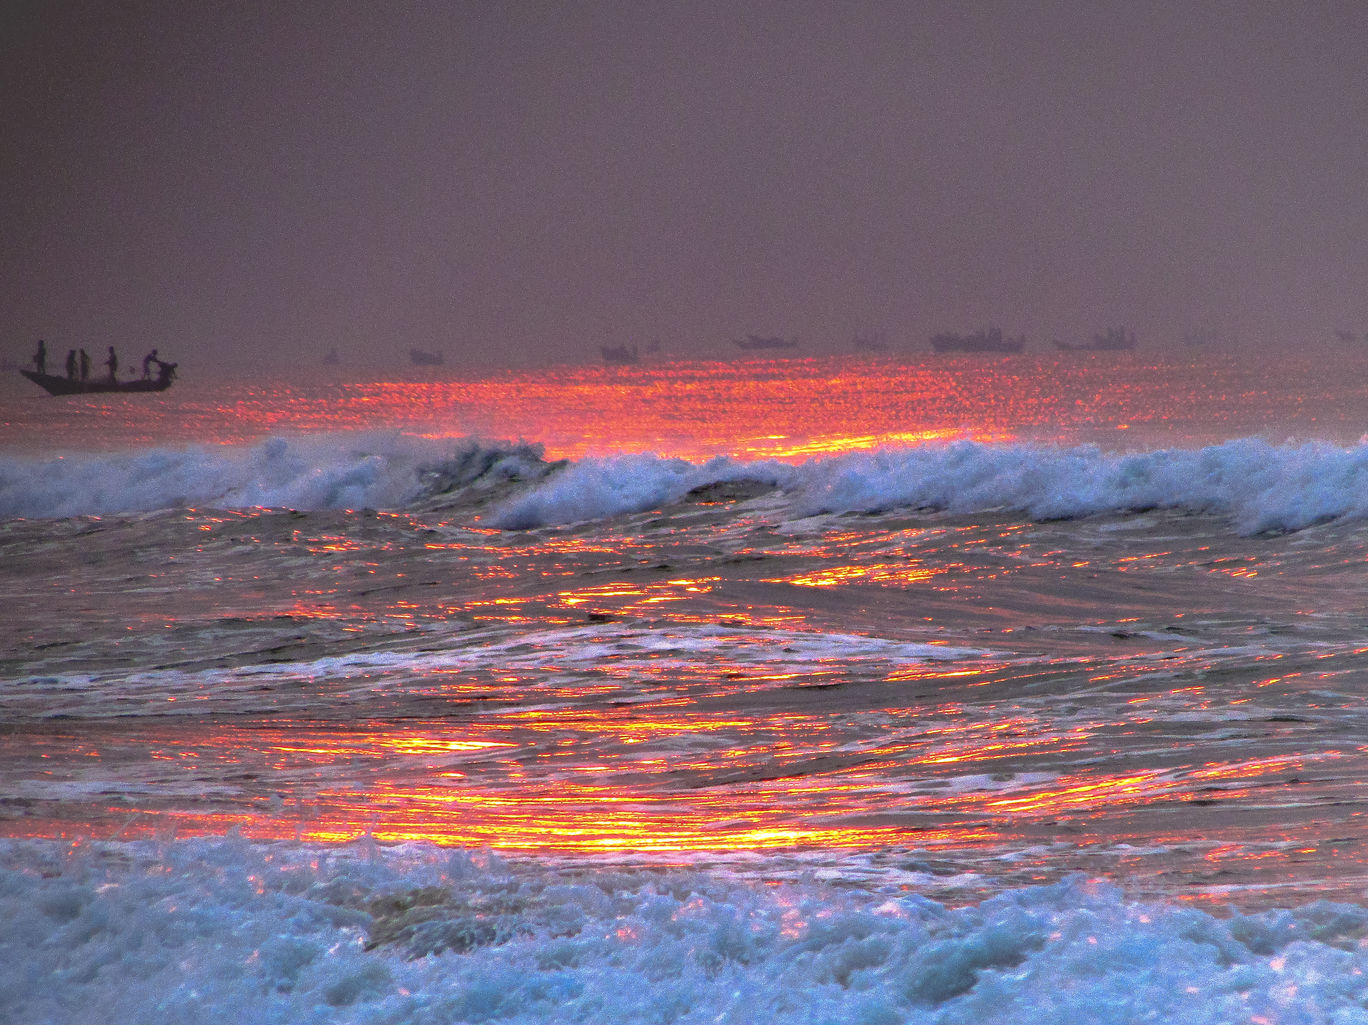 The Reflection of Sun Rays on the Waves at Puri blog @doibedouin